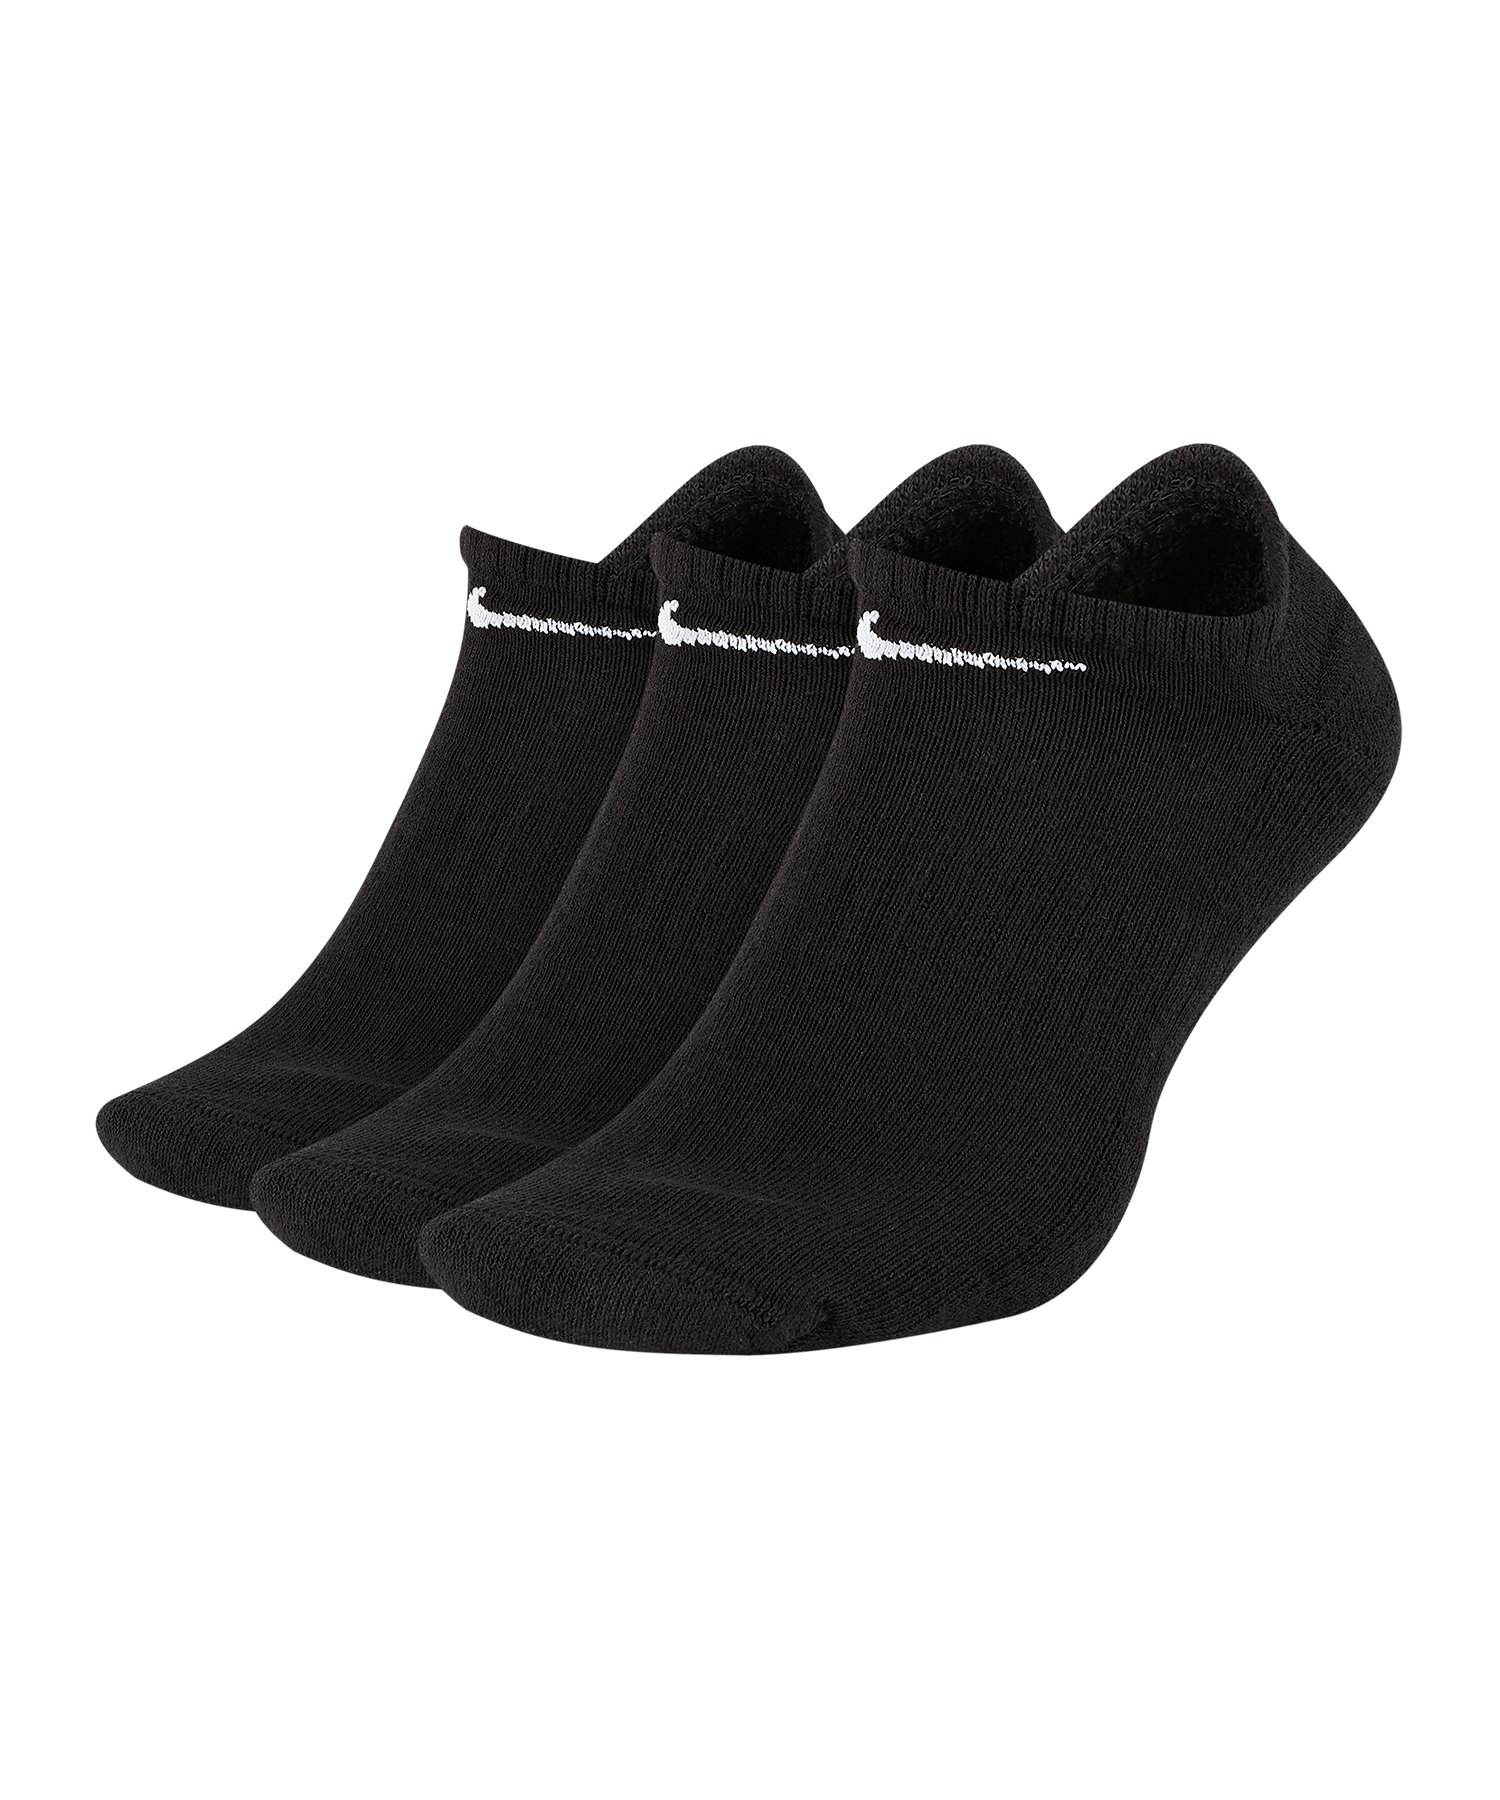 Nike Everyday Cushion No-Show Socken 3er Pack F010 - Schwarz